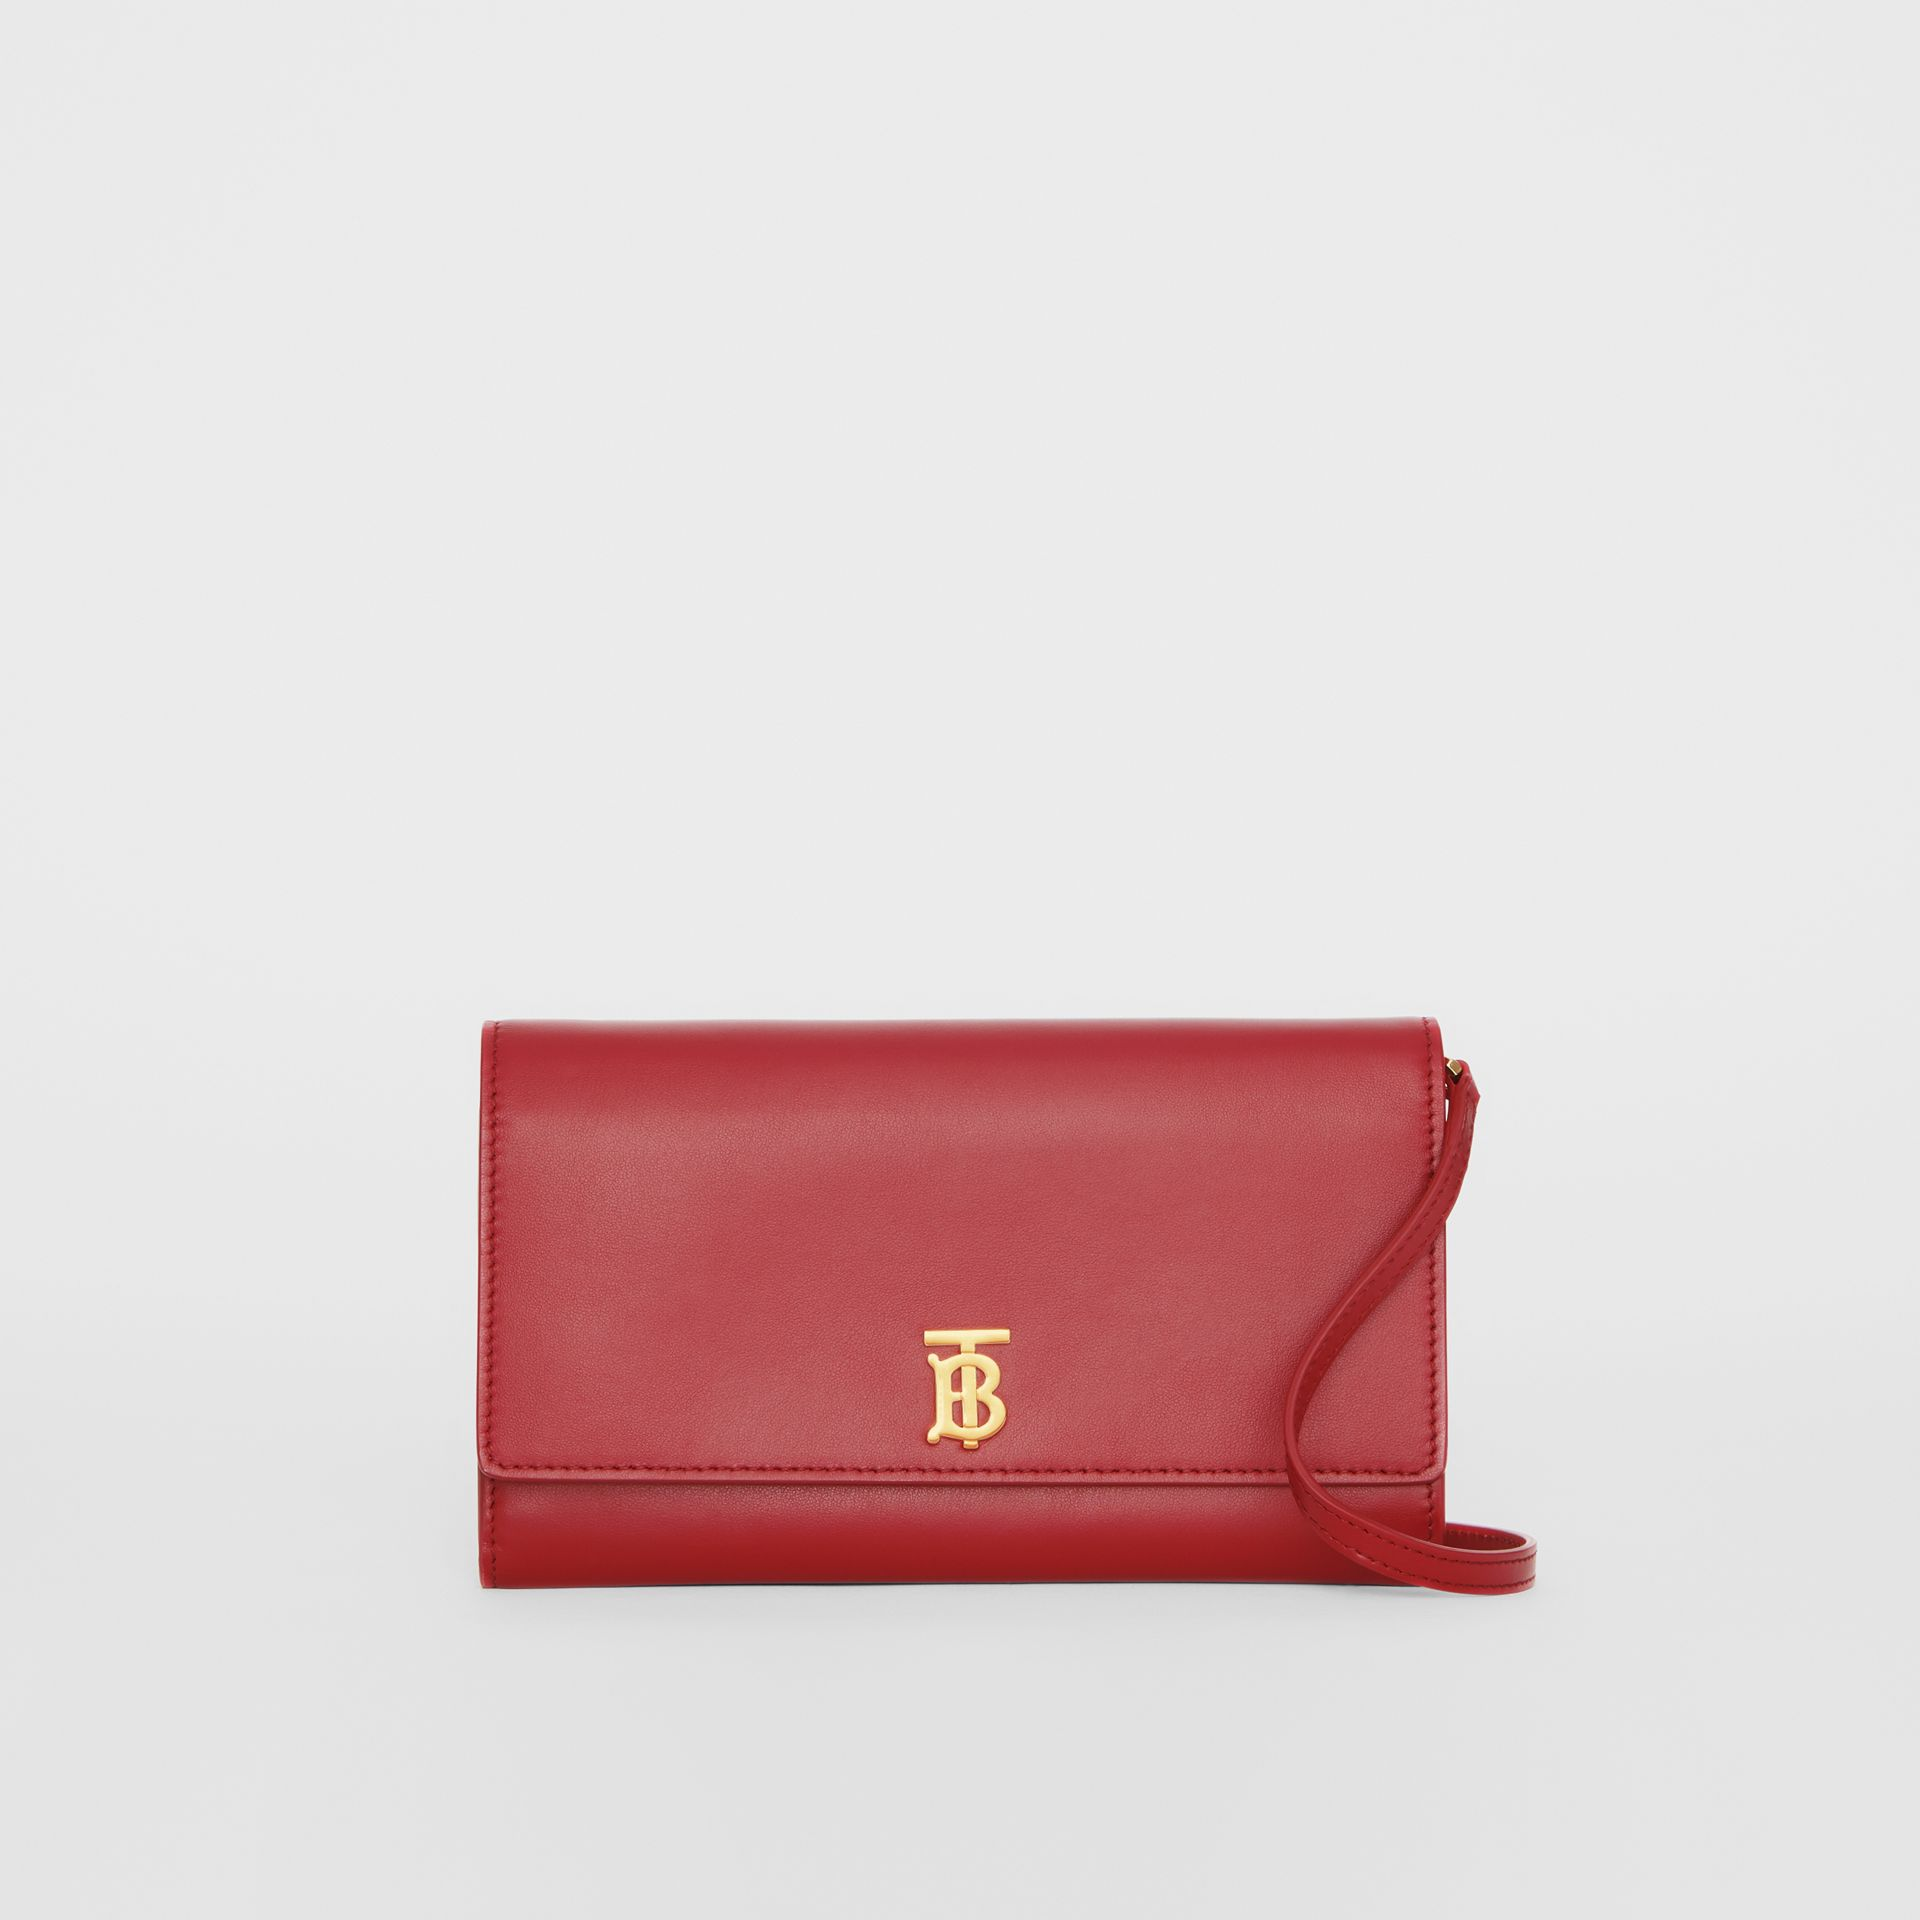 Monogram Motif Leather Wallet with Detachable Strap in Crimson - Women | Burberry Singapore - gallery image 0